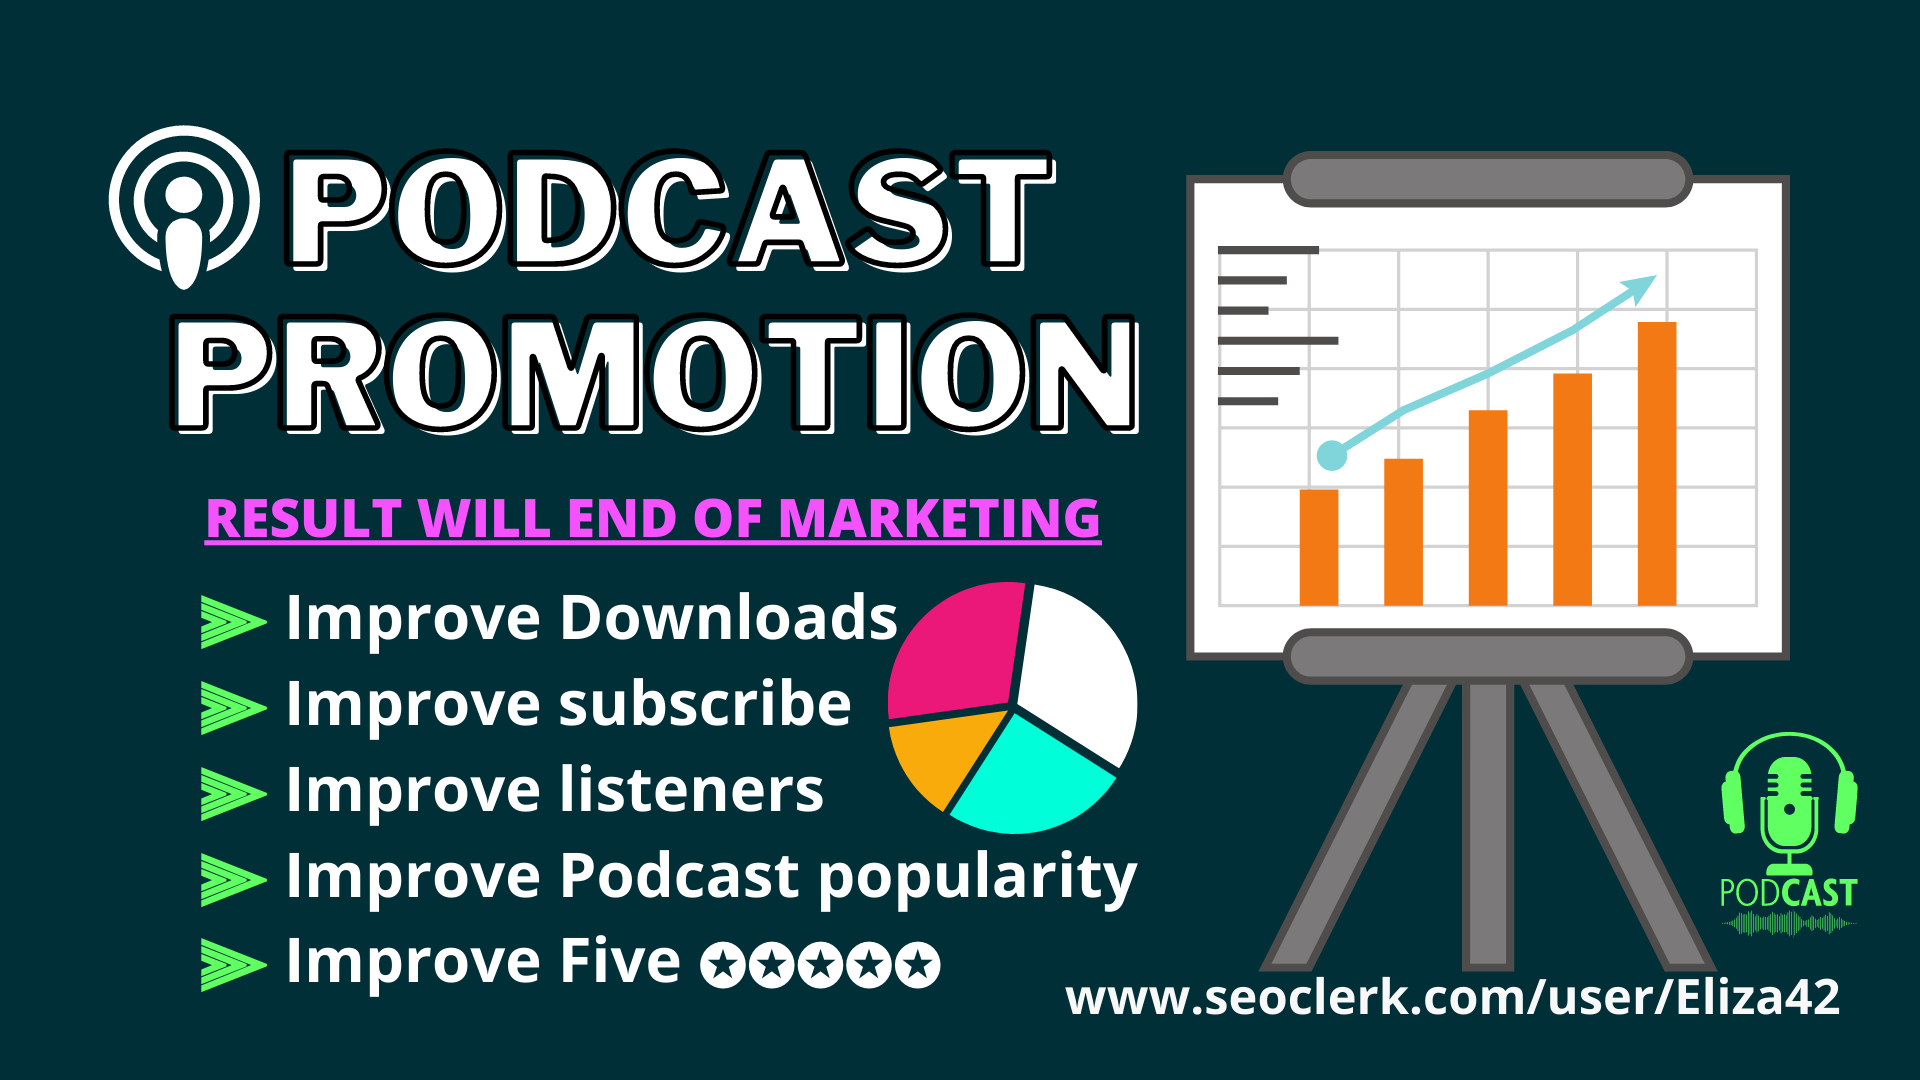 Promote your Podcasts from Thousands of organic active listeners